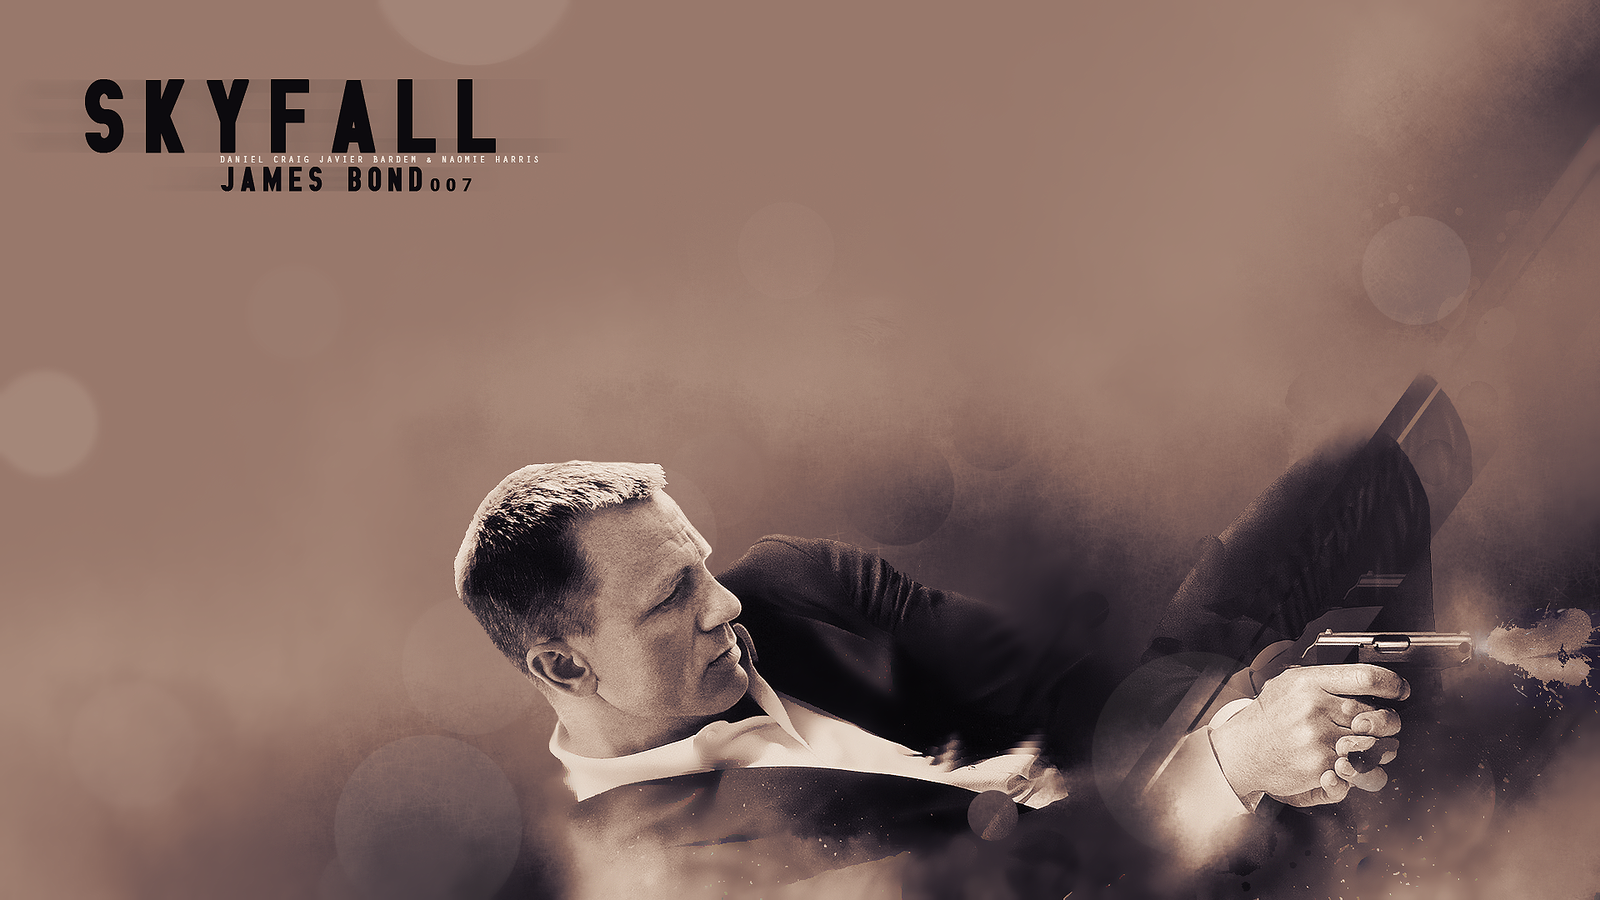 james bond skyfall posteramythology on deviantart